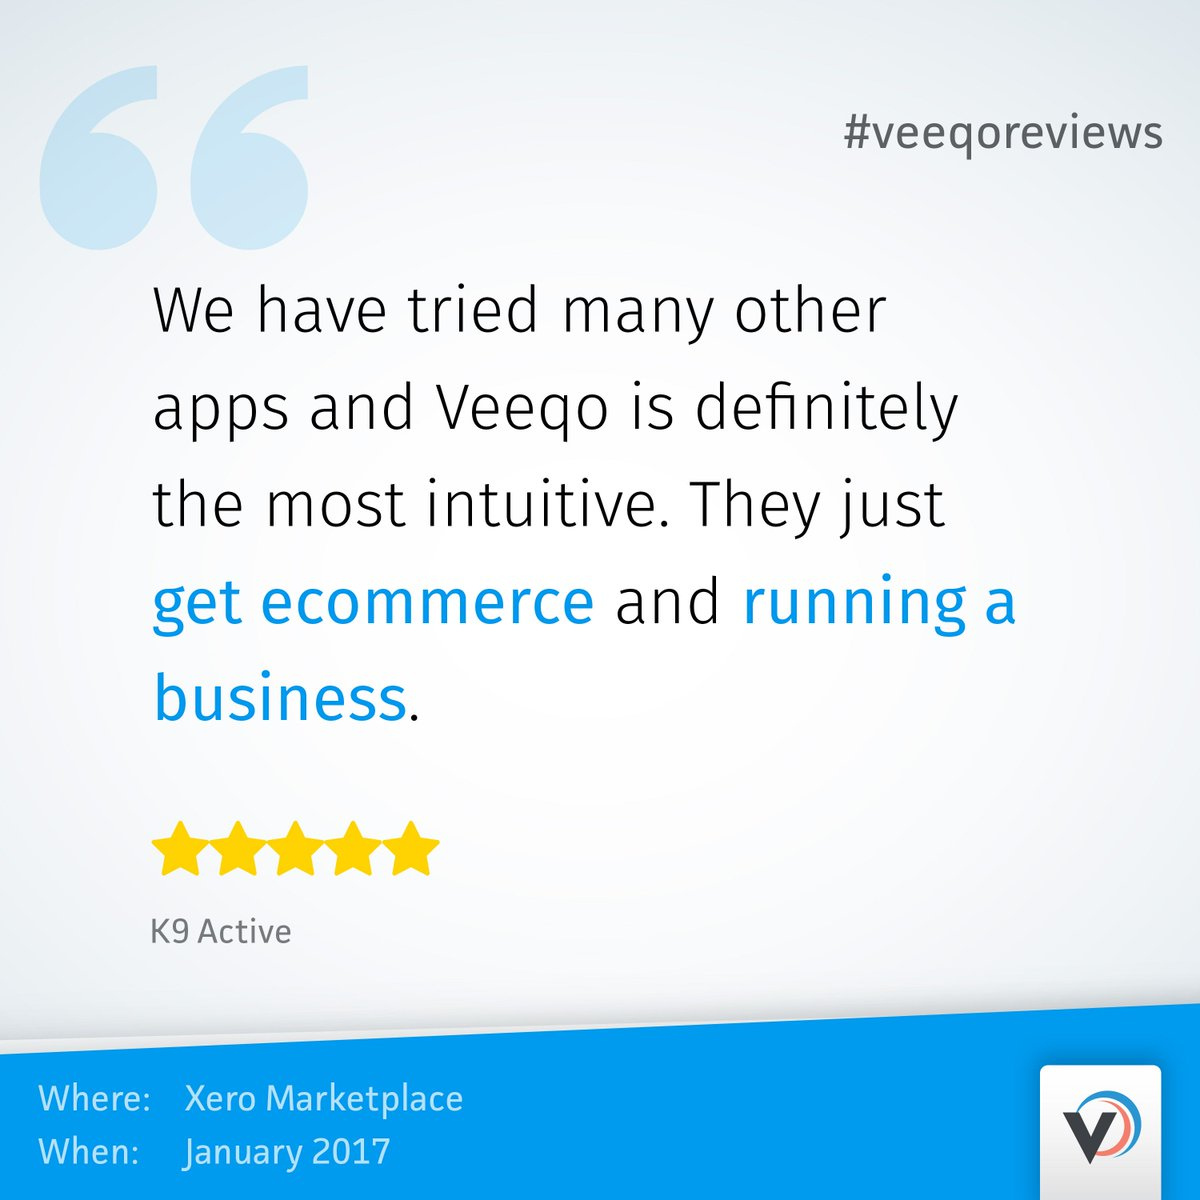 Veeqo Reviews on Twitter